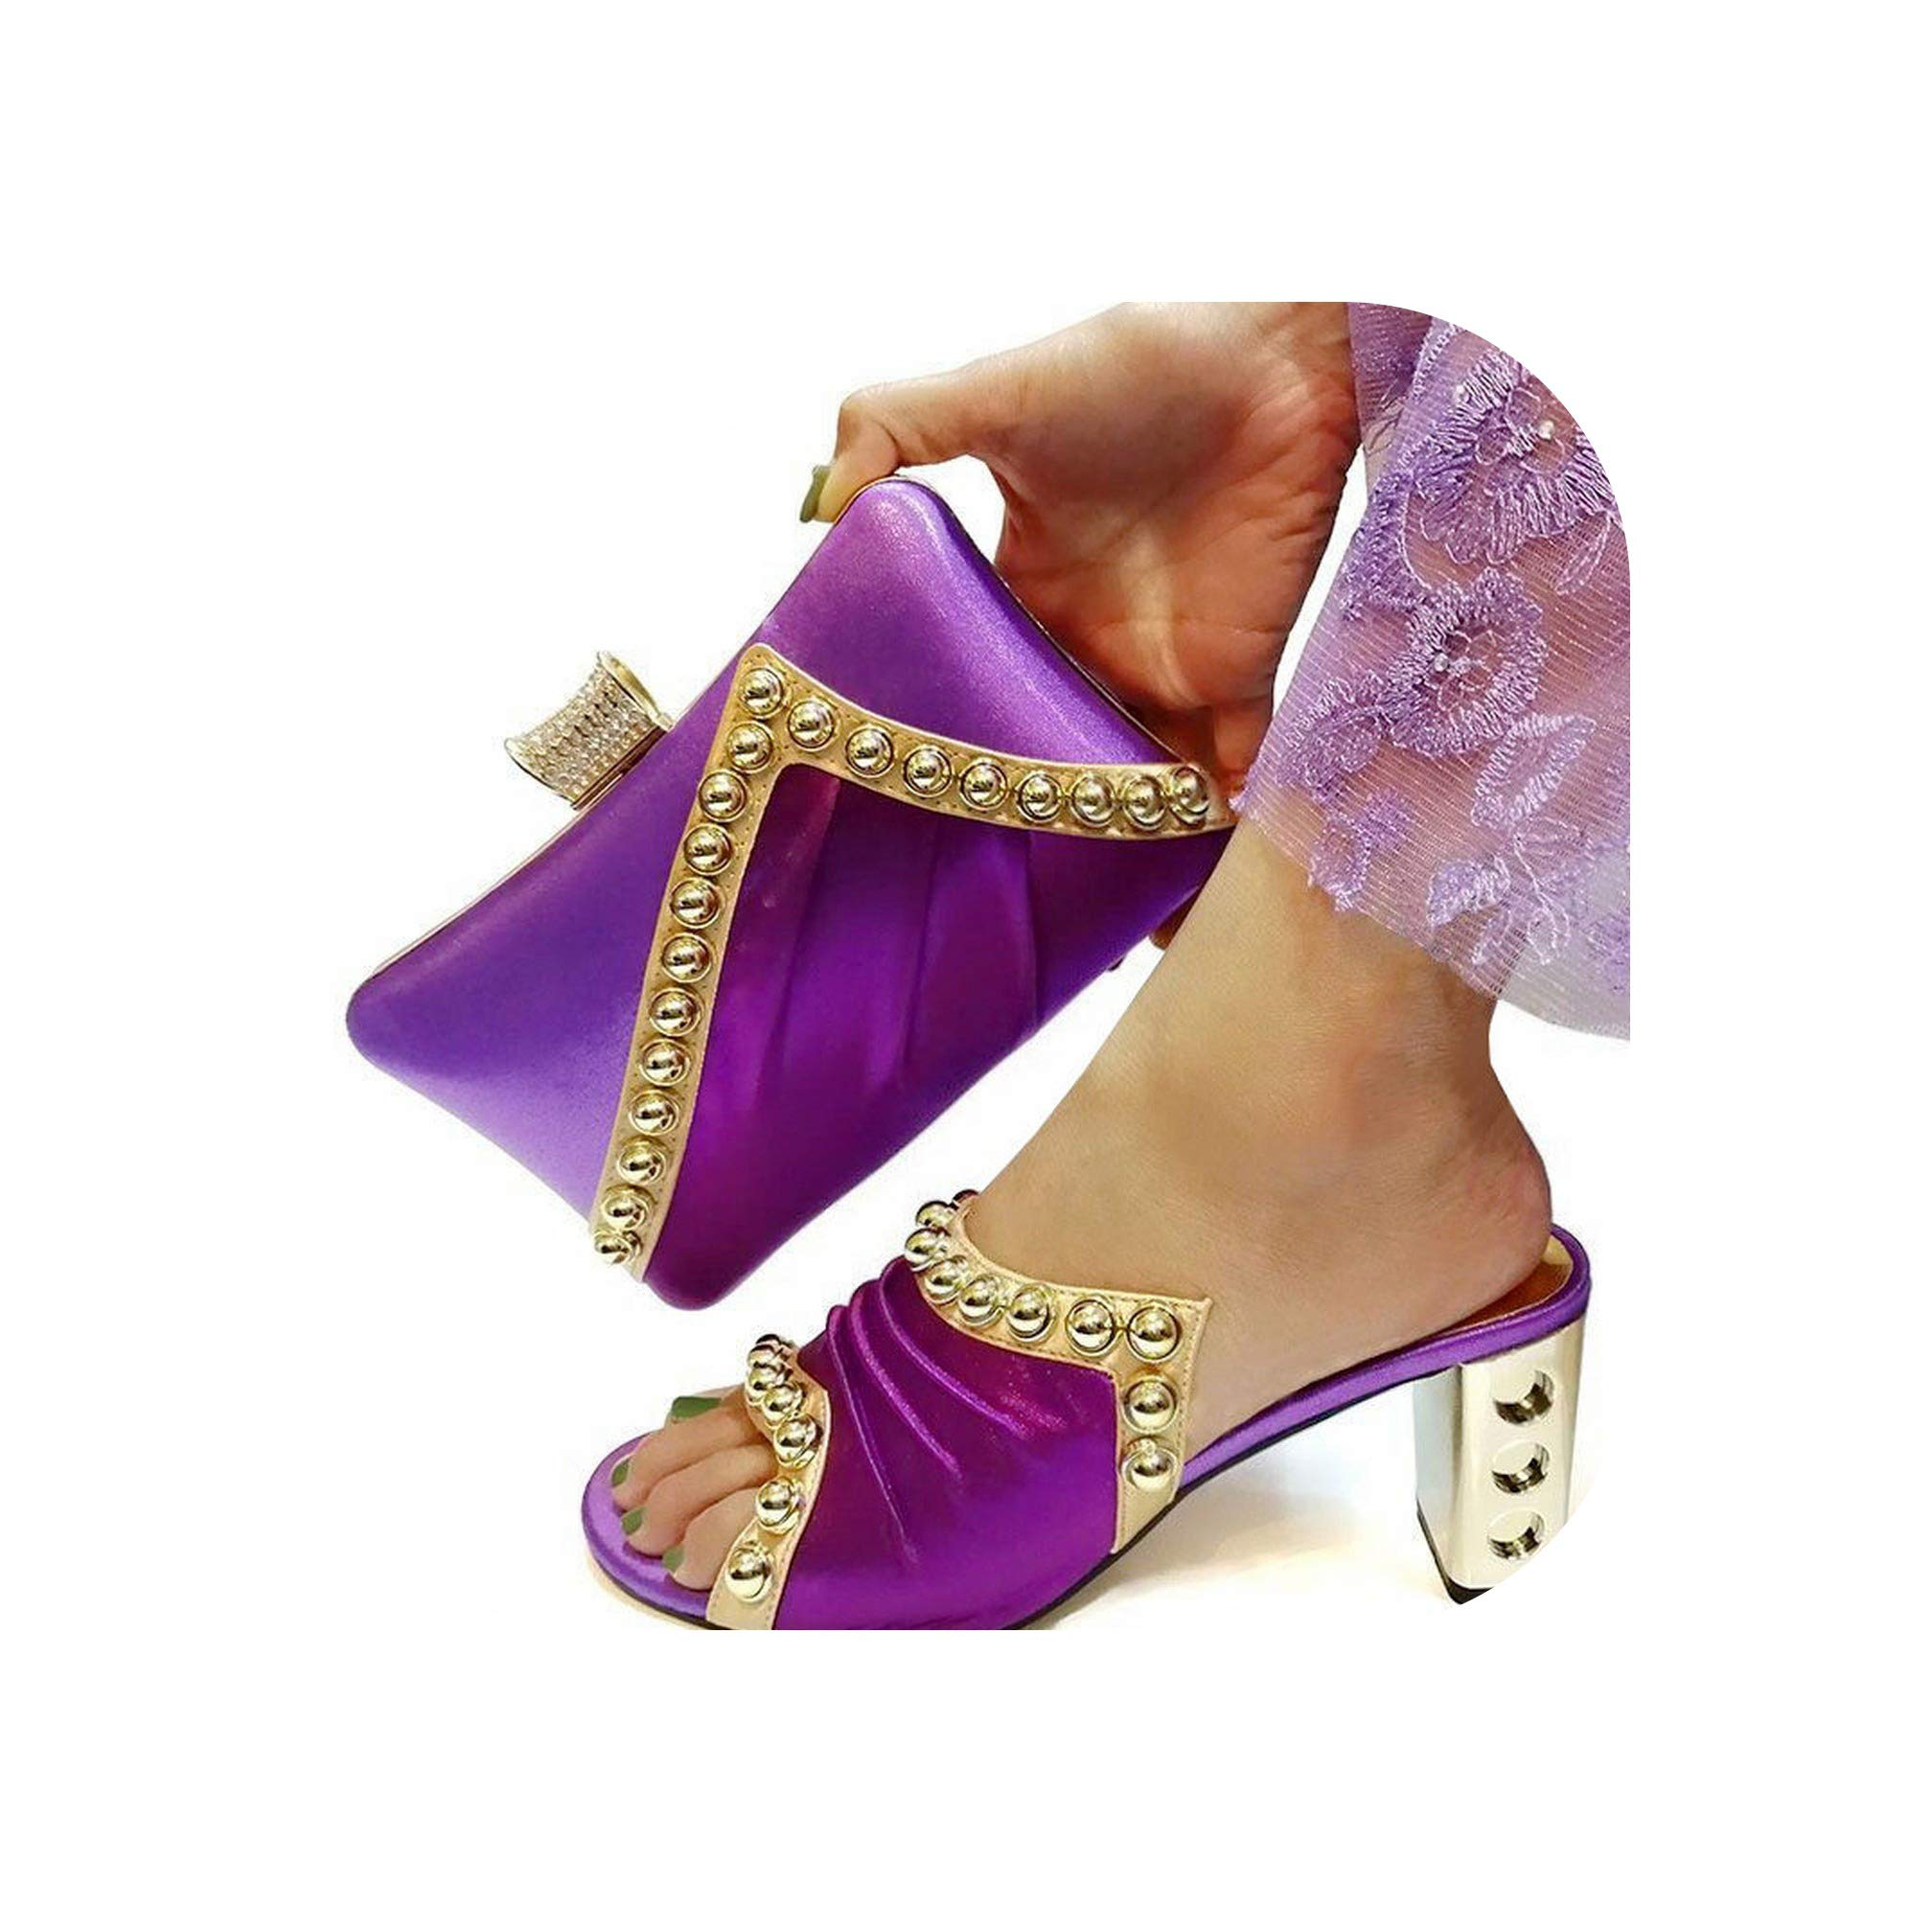 Moment Pink Color African Shoe and Bag Set High Heel Italian Shoe with Matching Bag Ladies Matching Women Shoe and Bag Nigerian Shoe,Purple,40